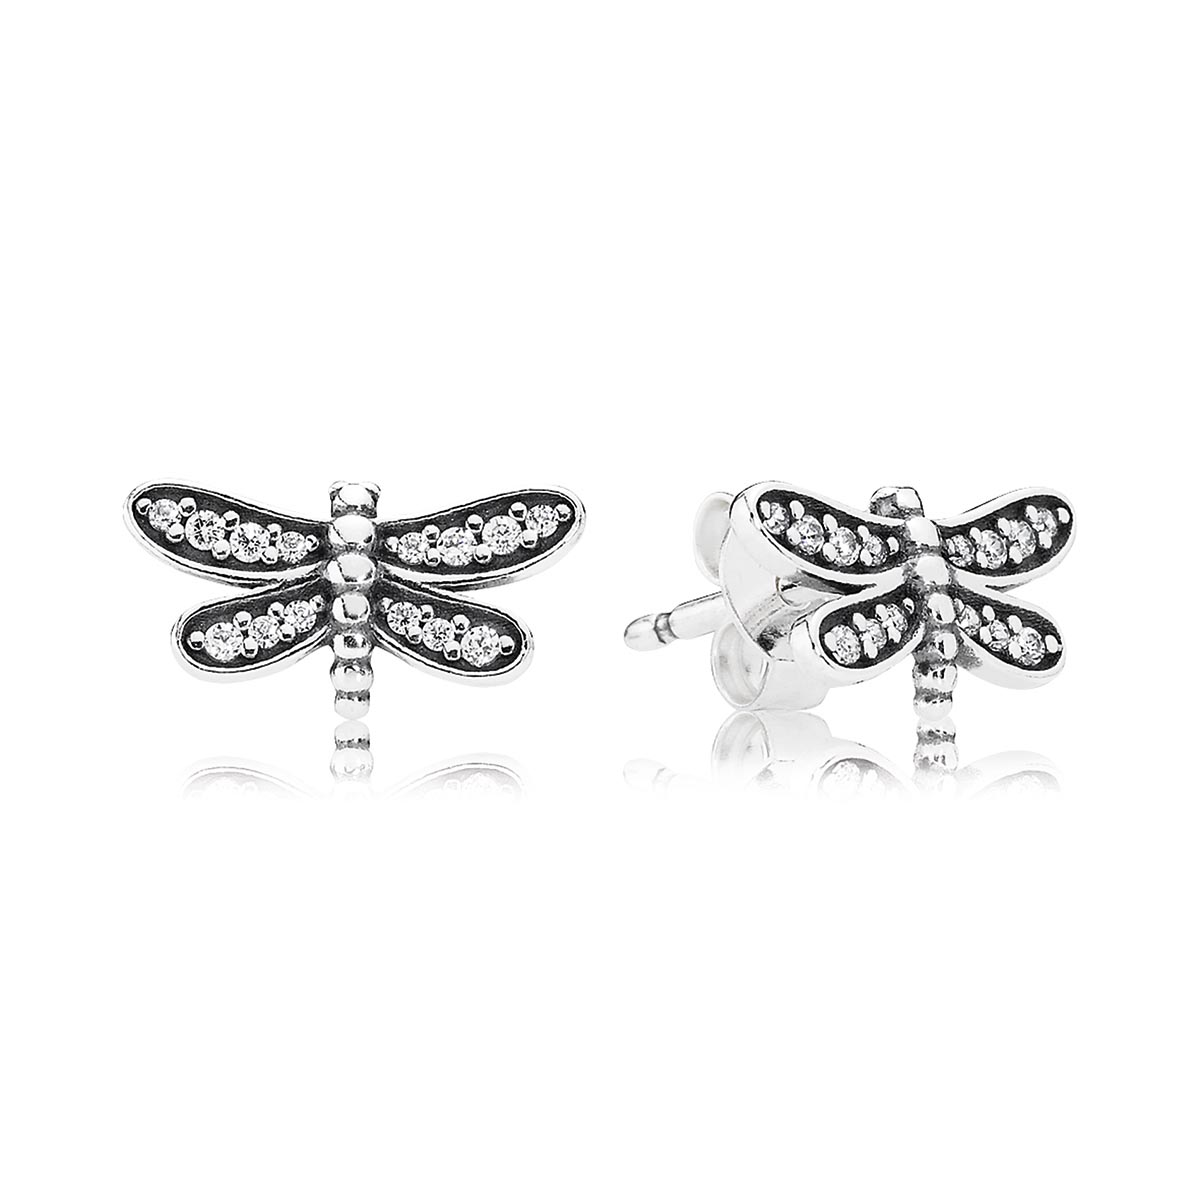 804-384-PANDORA Petite Dragonfly with Clear CZ Stud Earrings